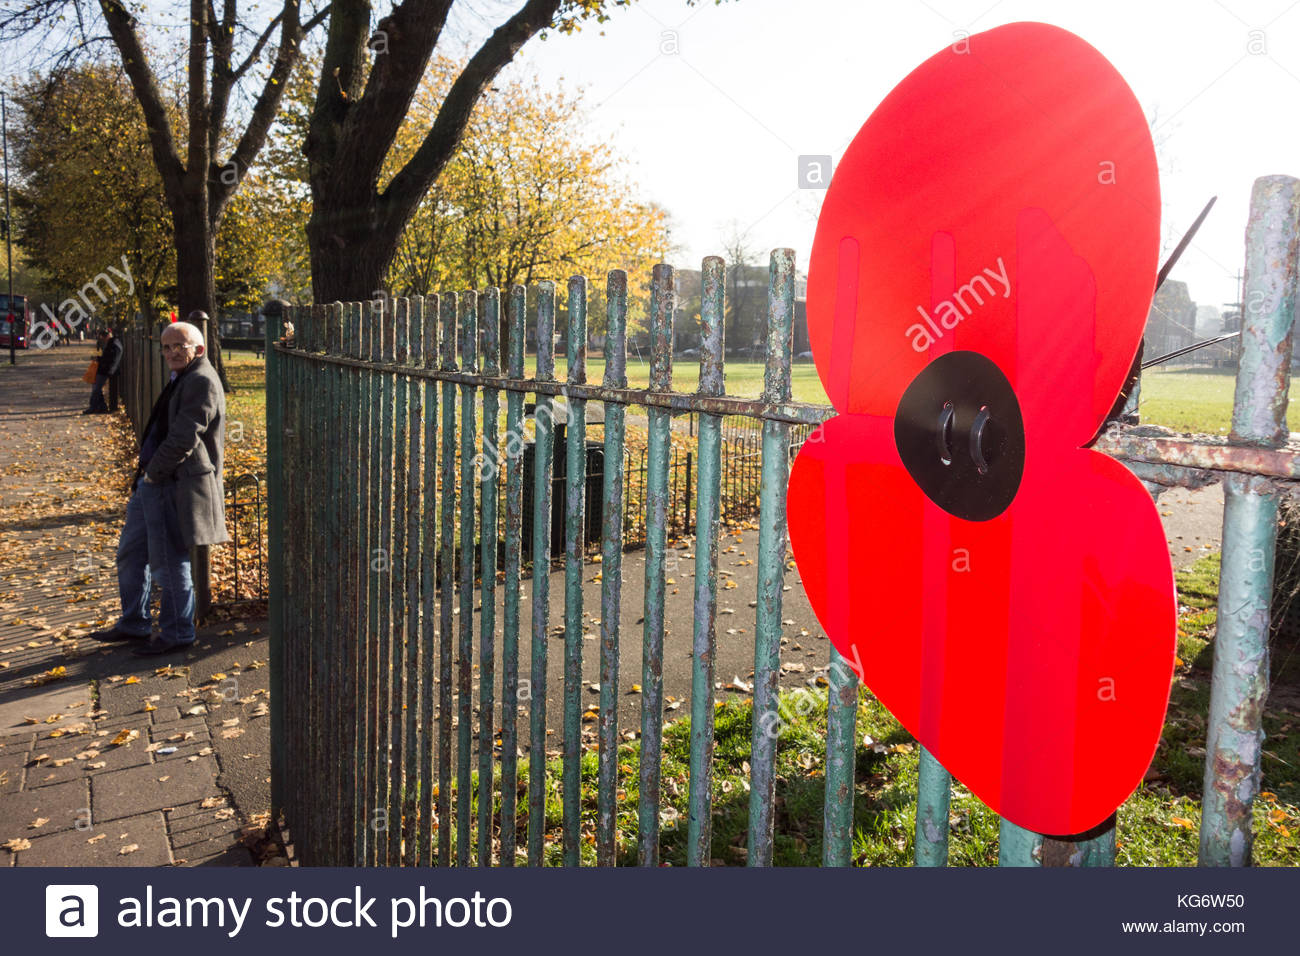 A giant poppy as part of a Remembrance memorial on Turnham Green in Chiswick, west London, UK. - Stock Image